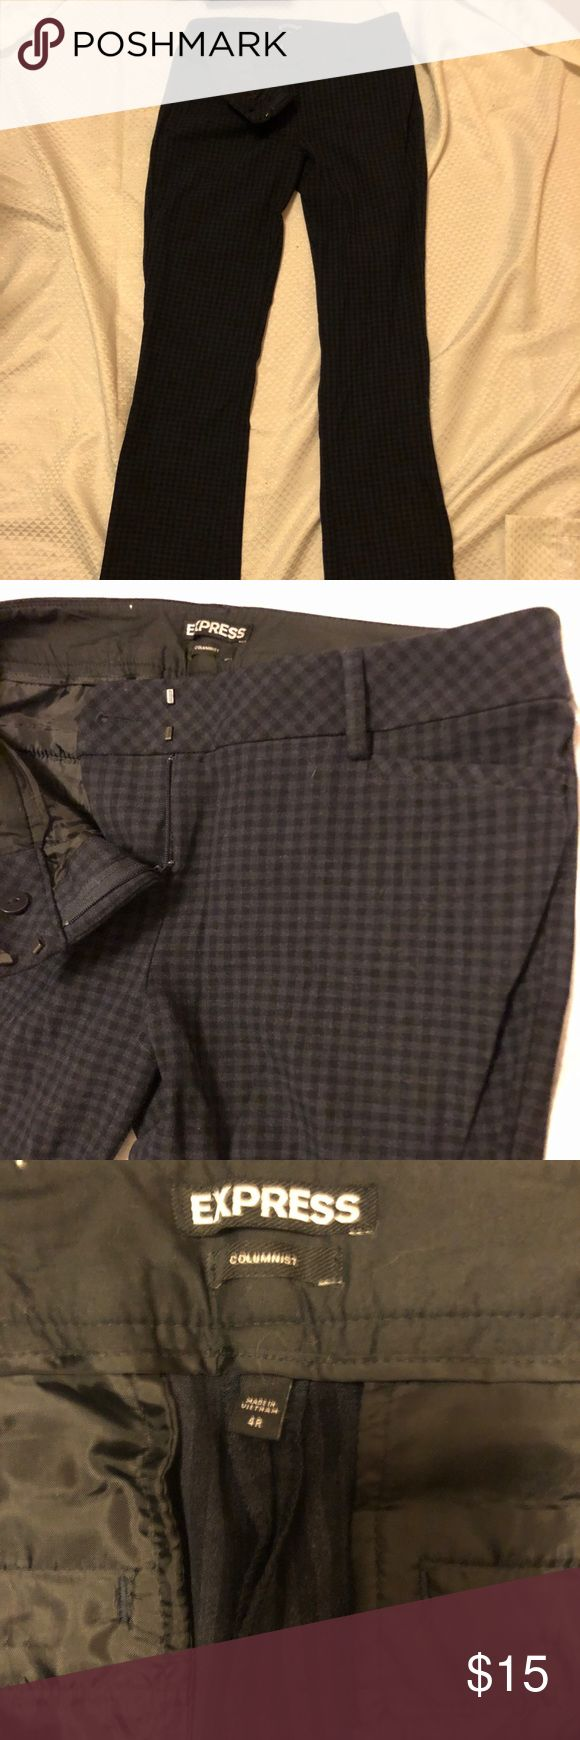 Express Columnist Pants 4R stretch NWOT Express Columnist Pants 4R stretch NWOT, black and navy plaid / checkered print. Slim boot cut / barely boot cut style. Extremely flattering, very comfortable (feels like pointe fabric, thick and stretchy. ** Smoke free, pet friendly home. Inseam= approximately 32.5 inches Express Pants Trousers